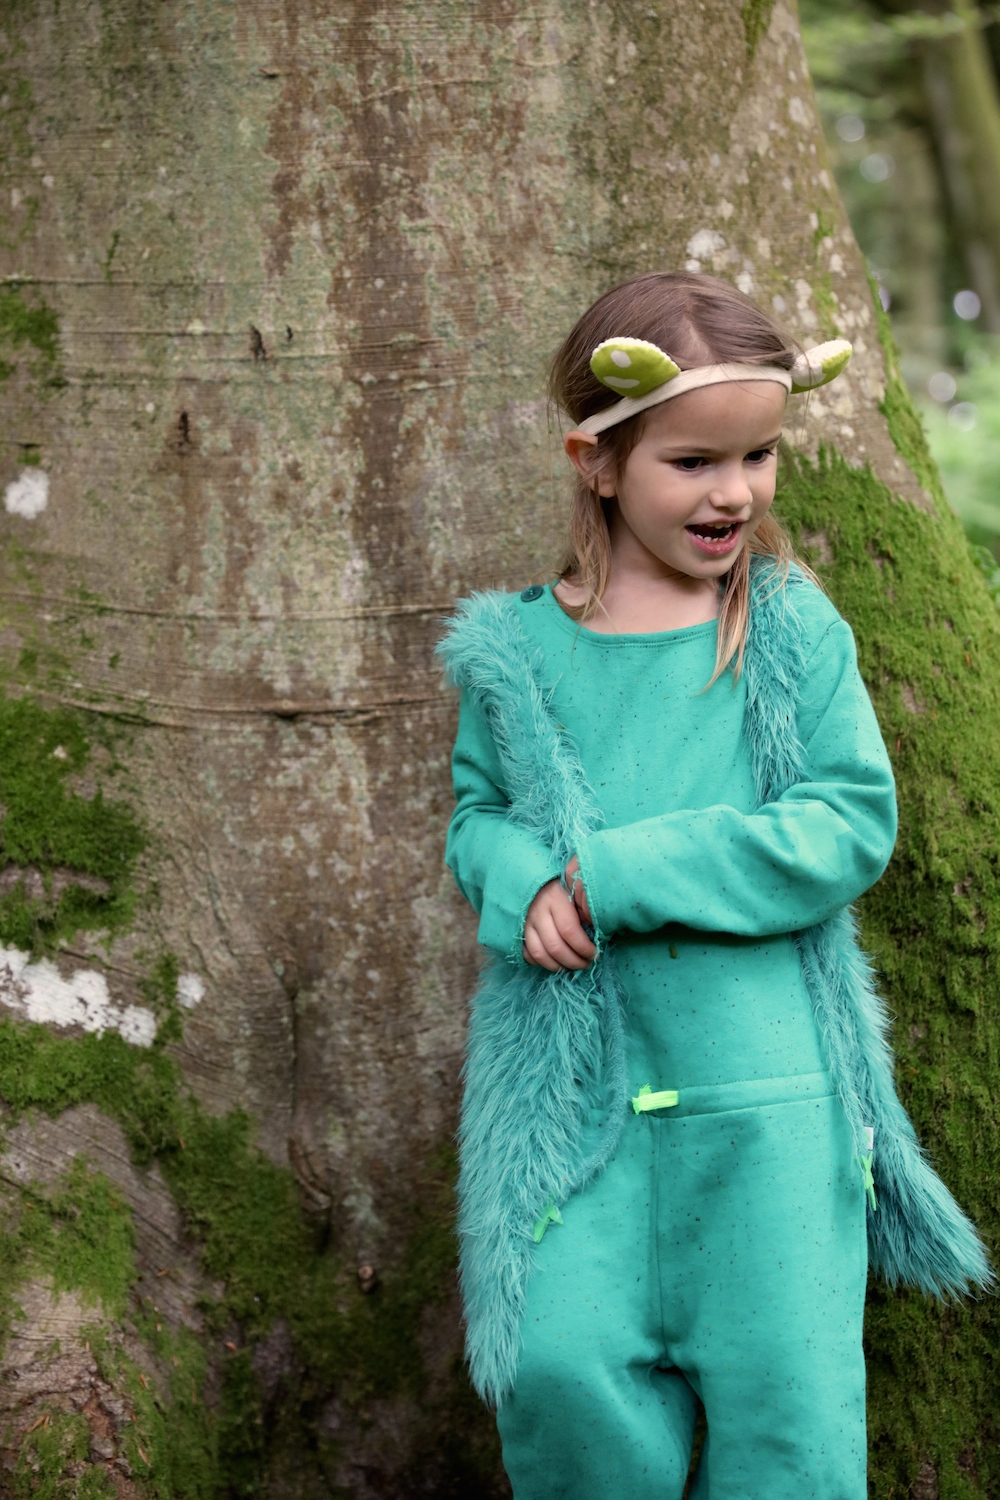 Noe_and_zoe_AW16_green_jumpsuit_bear_ers